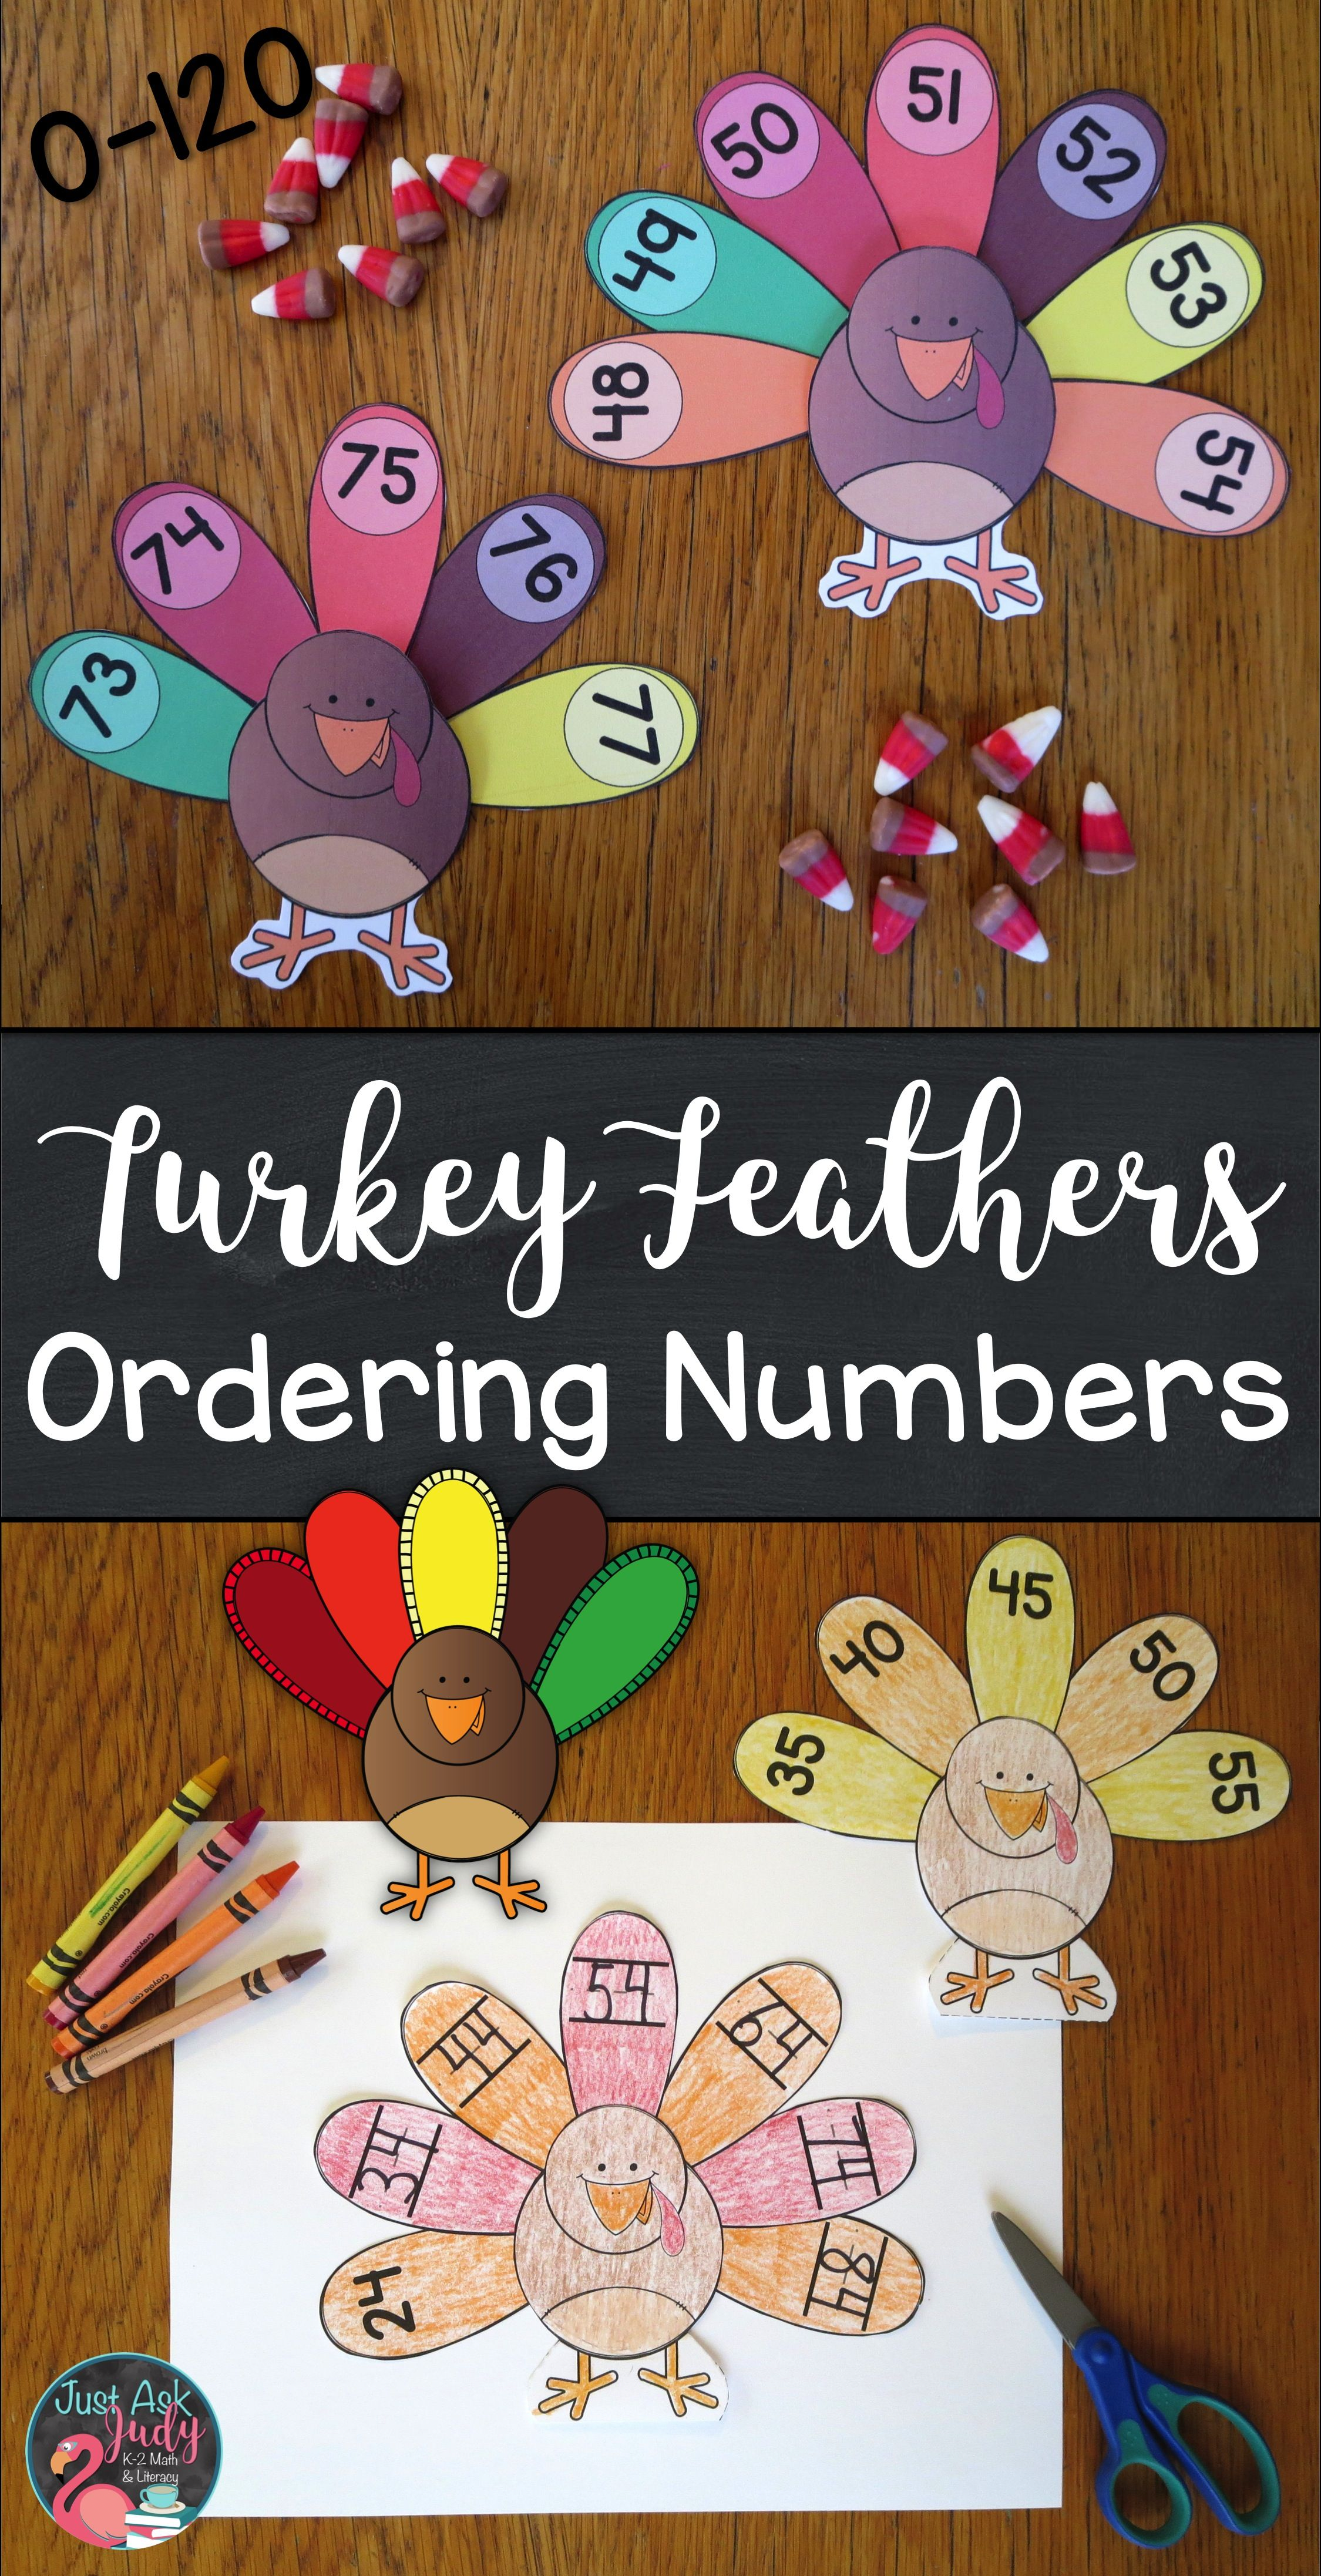 Ordering Numbers 0-120 Turkey Feathers | Maths resources, Pre-school ...